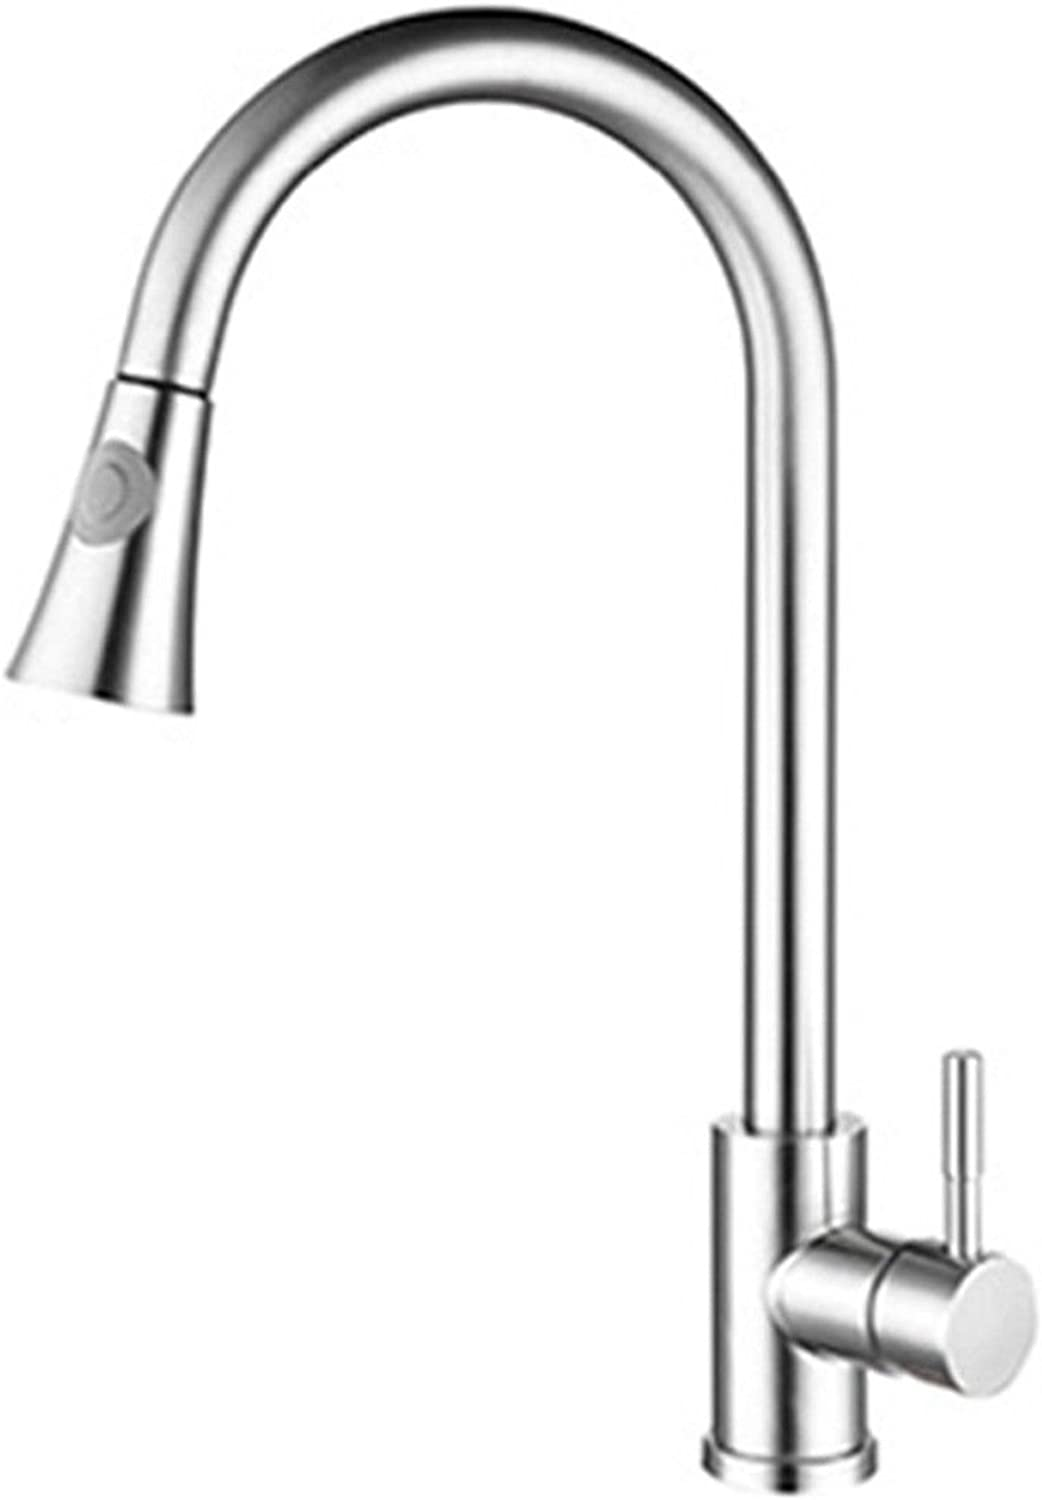 Commercial Single Lever Pull Down Kitchen Sink Faucet Brass Constructed Polished 304 Stainless Steel Kitchen Bathroom Brushed Faucet, 43  23  15Cm